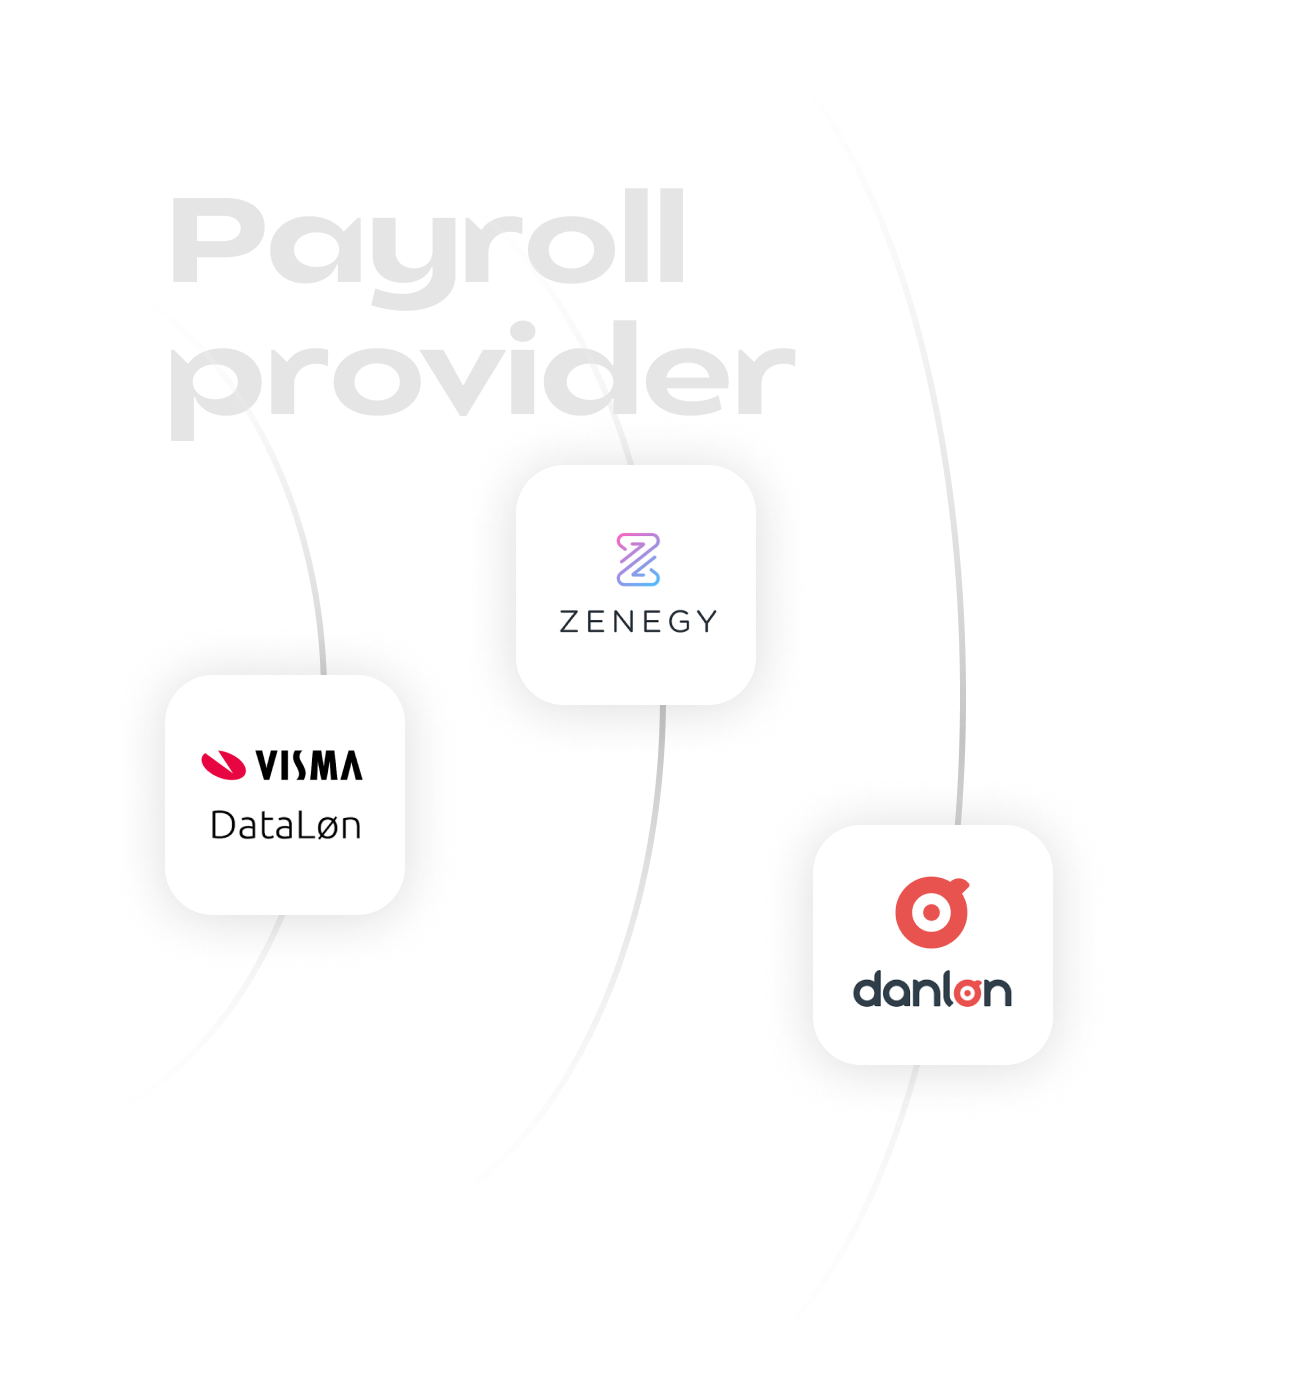 Butter integrates with your payroll provider, such as Zenegy, Visma Dataløn or. danløn